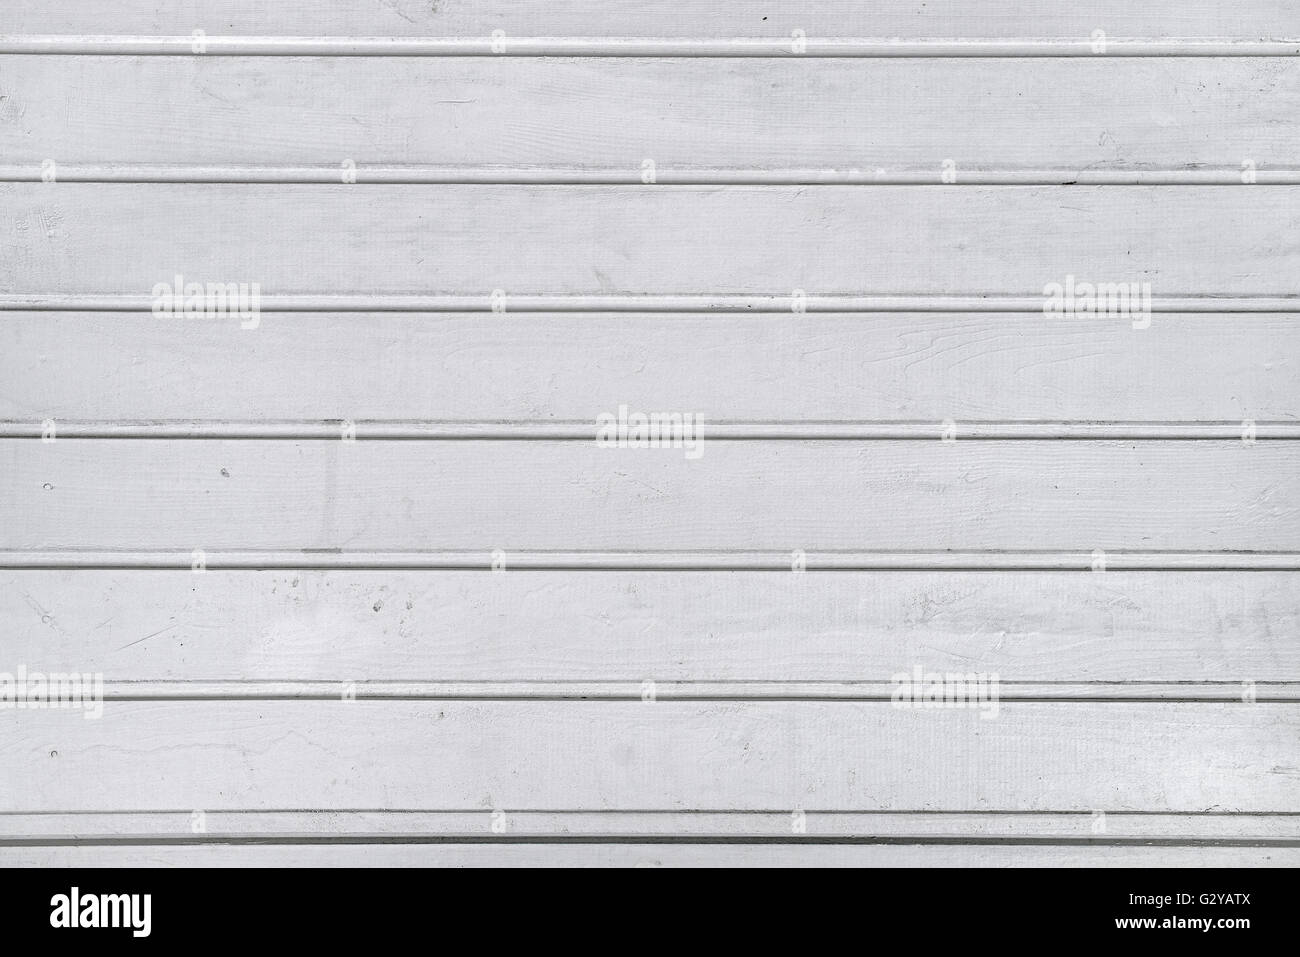 White wood planks texture, pale painted wooden wall - Stock Image